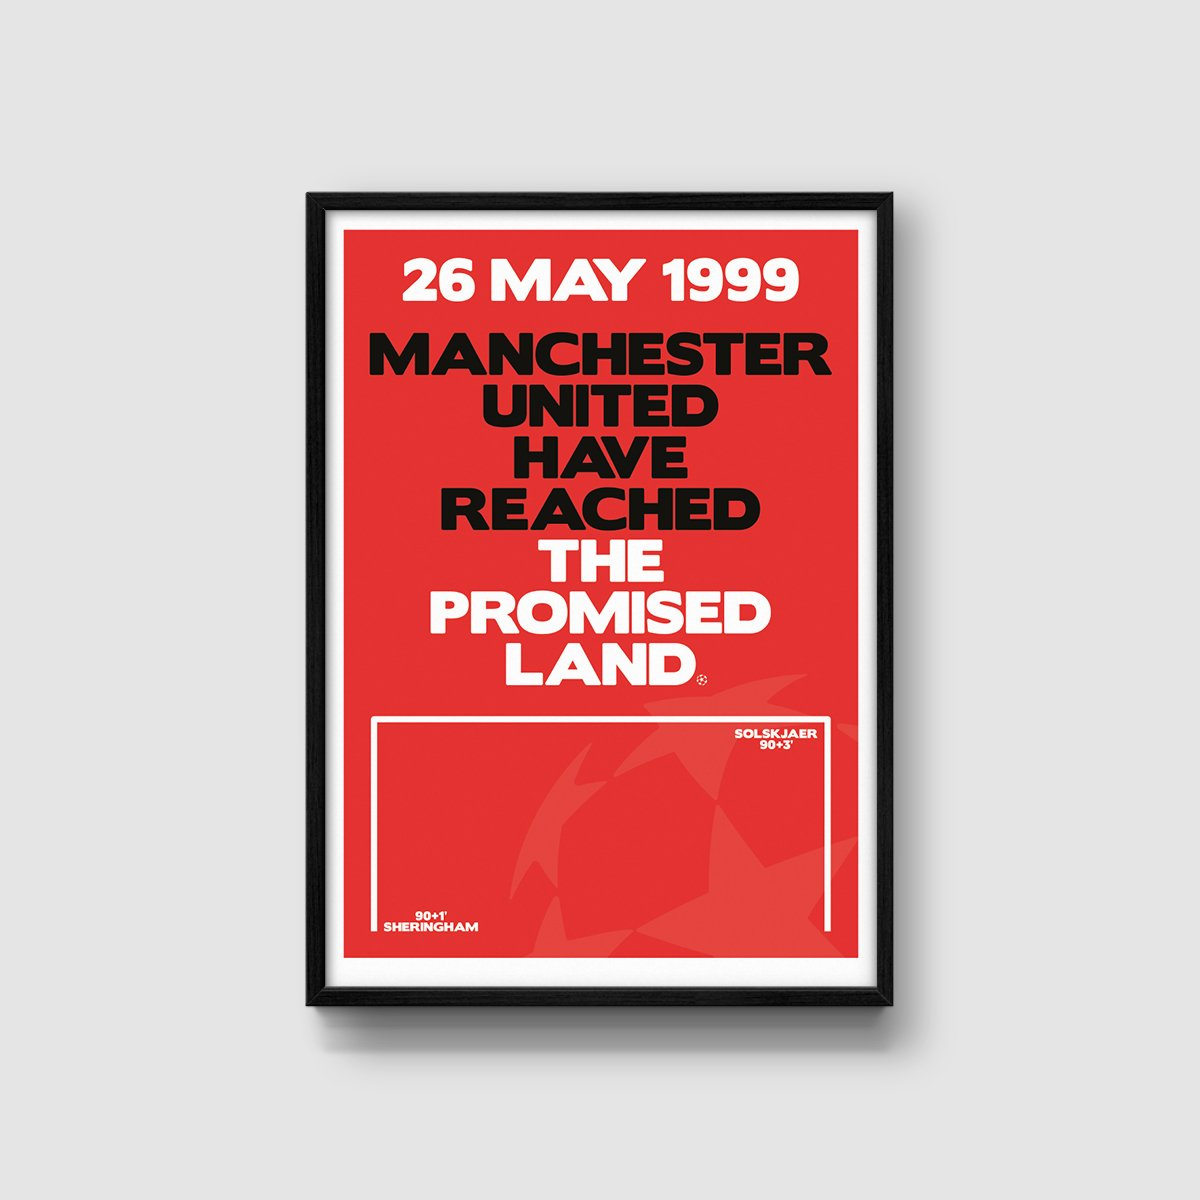 Get your quality @ManUtd exclusive A3 #print, designed by @jordanhemsworth @TheFCIndex for   http:// ow.ly/SD1x30dOoCI      #MUFC #ManUtd pic.twitter.com/G07SZvNpHP